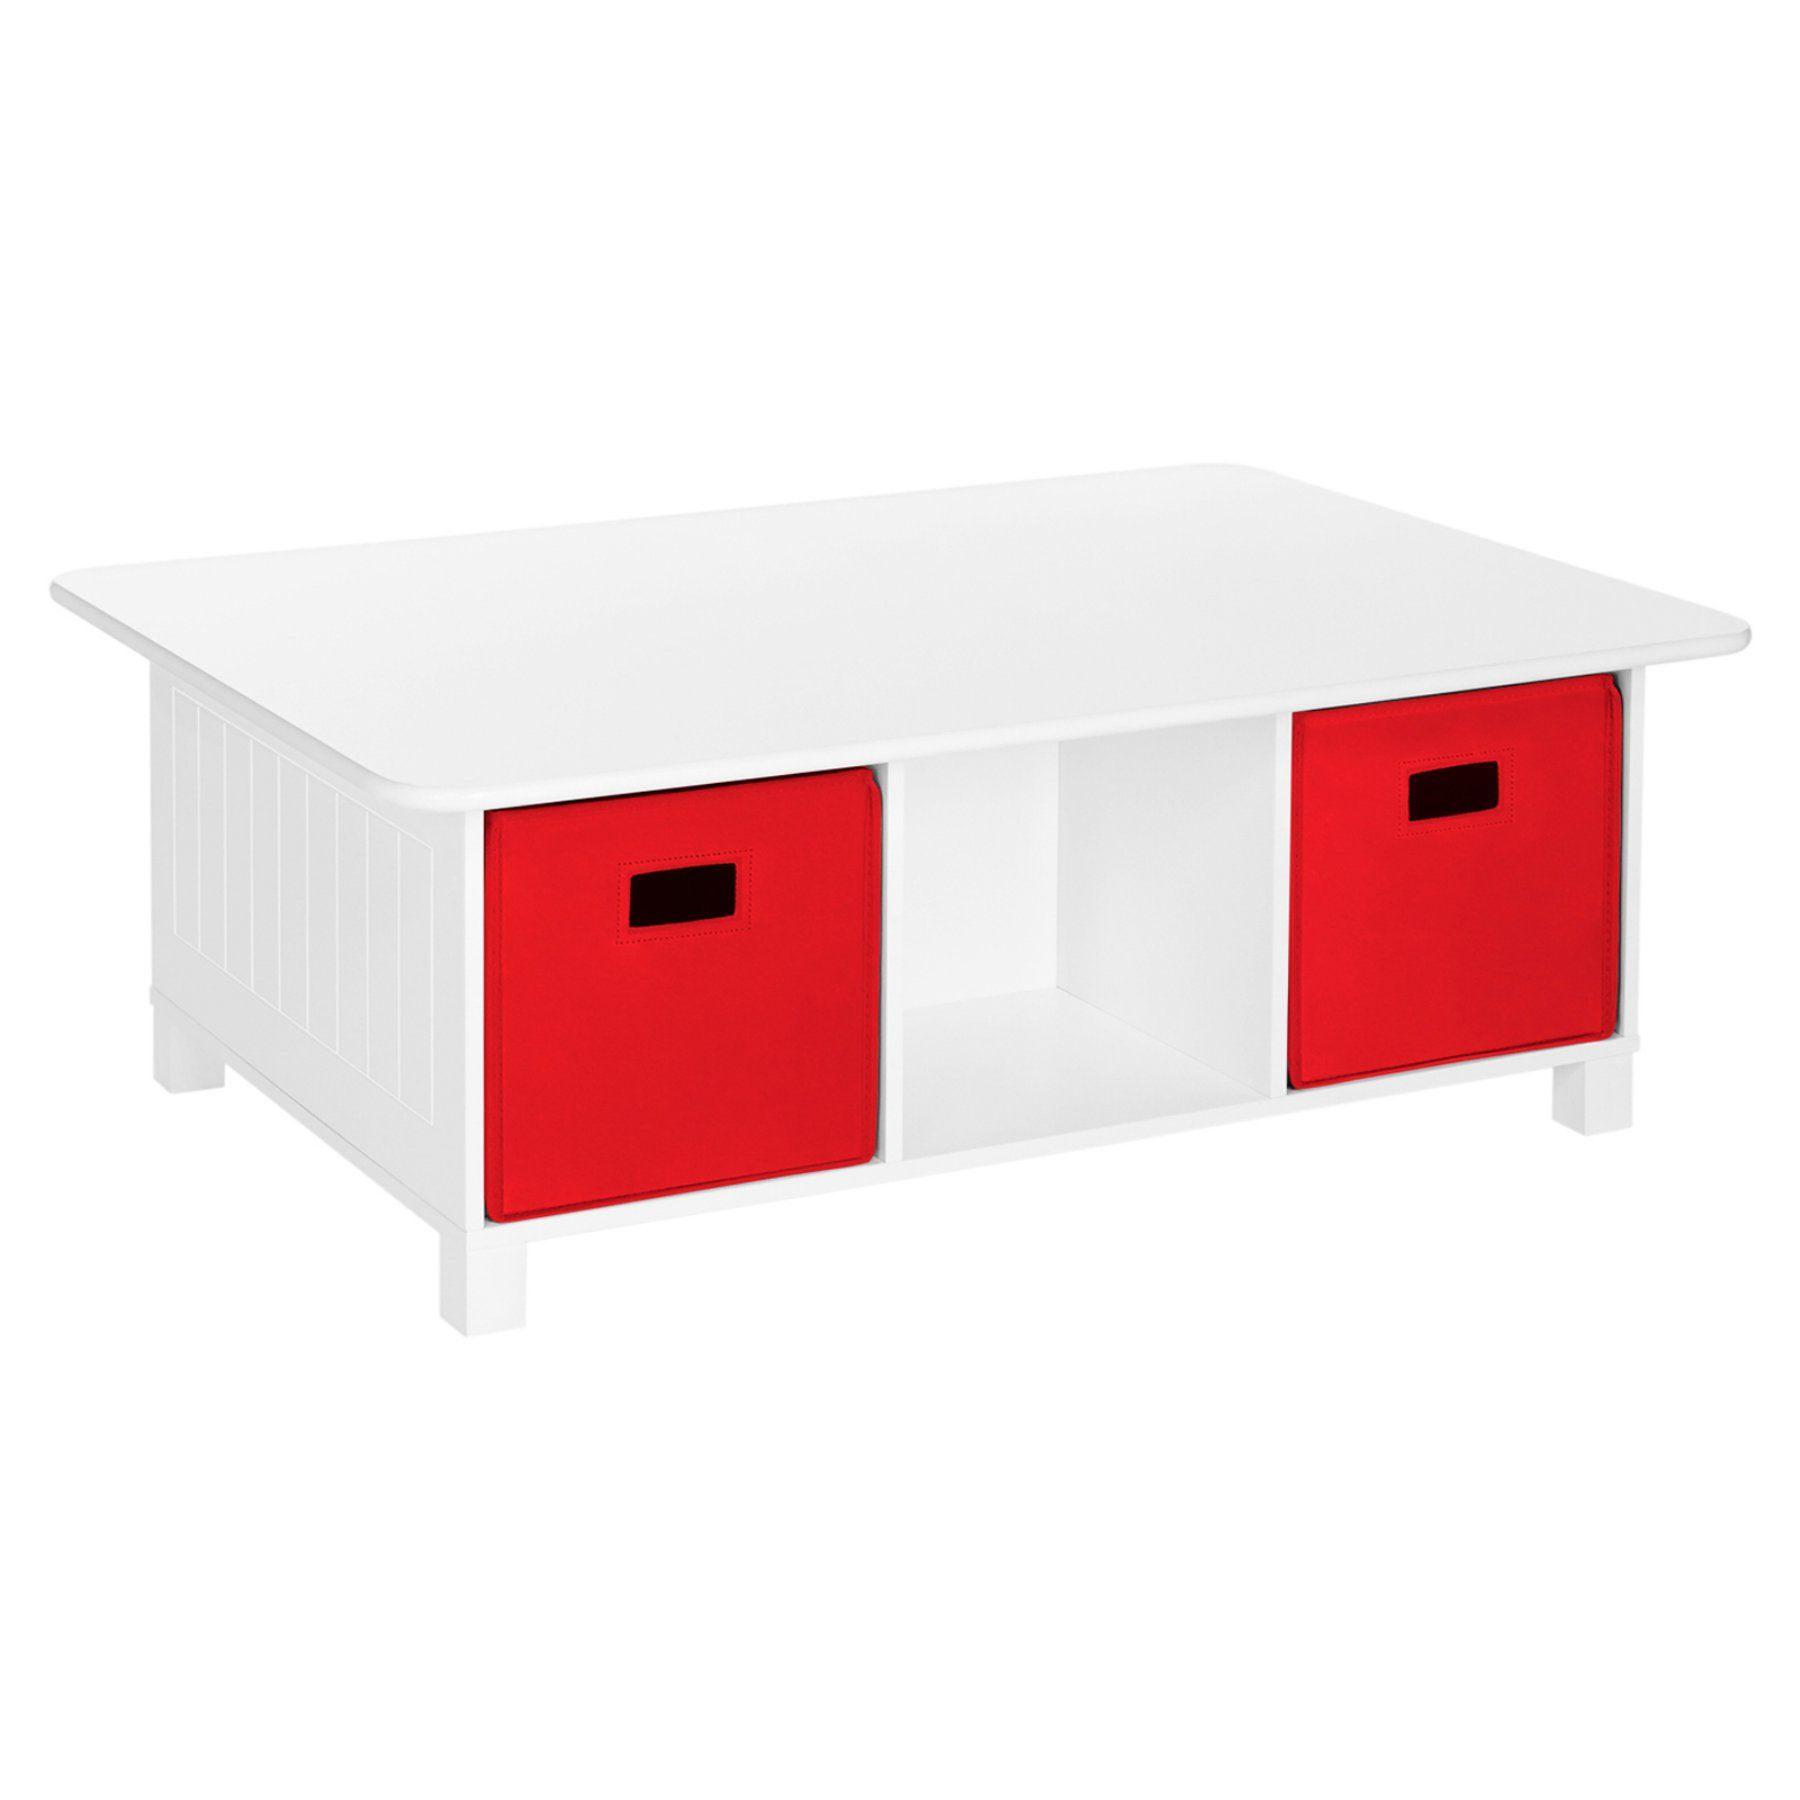 Riverridge Home Kids Activity Table With Storage Cubby Storage